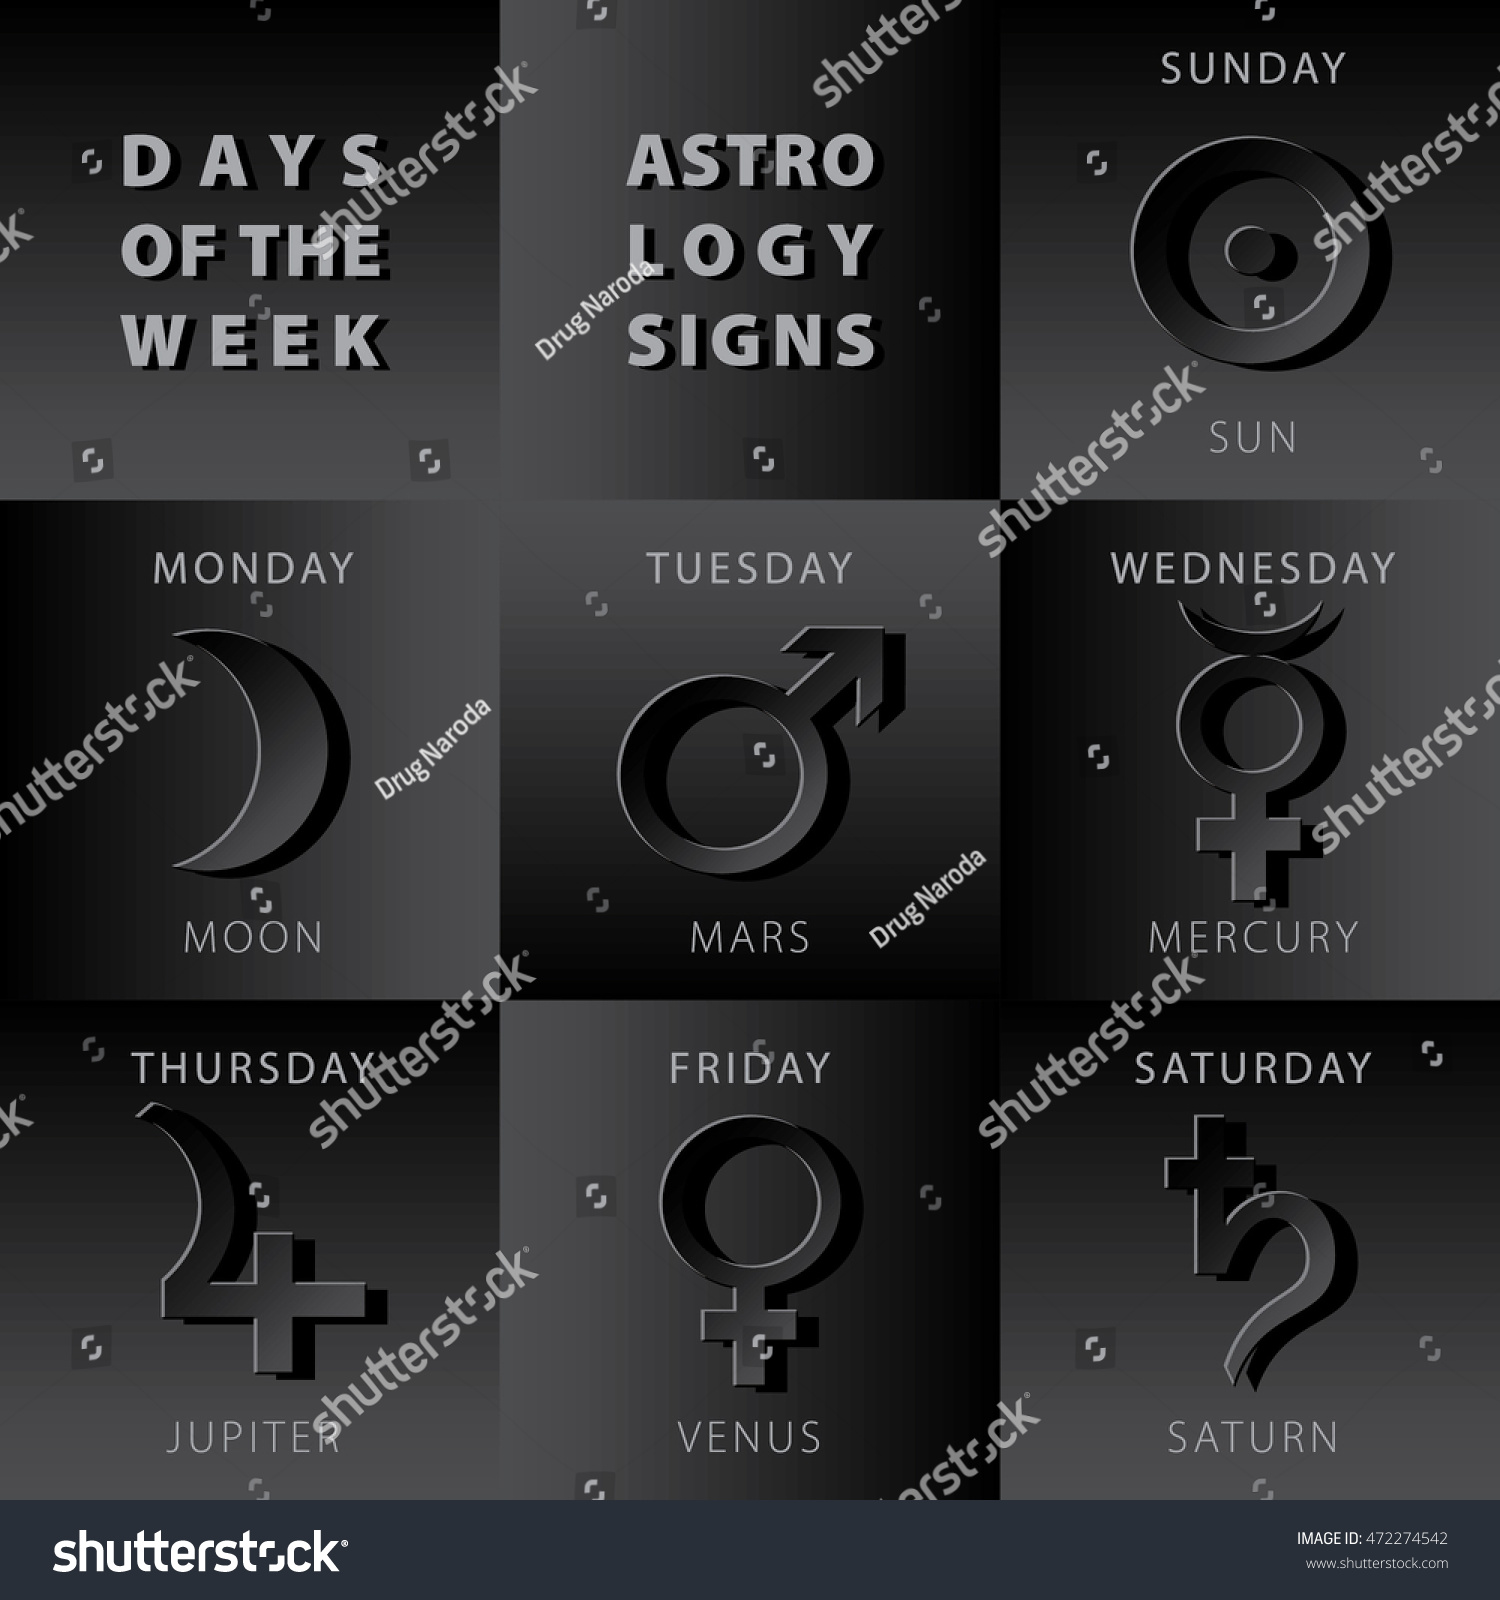 Mars stock symbol images symbols and meanings week days astrology signs moon mars stock vector 472274542 week days astrology signs moon mars mercury buycottarizona Image collections